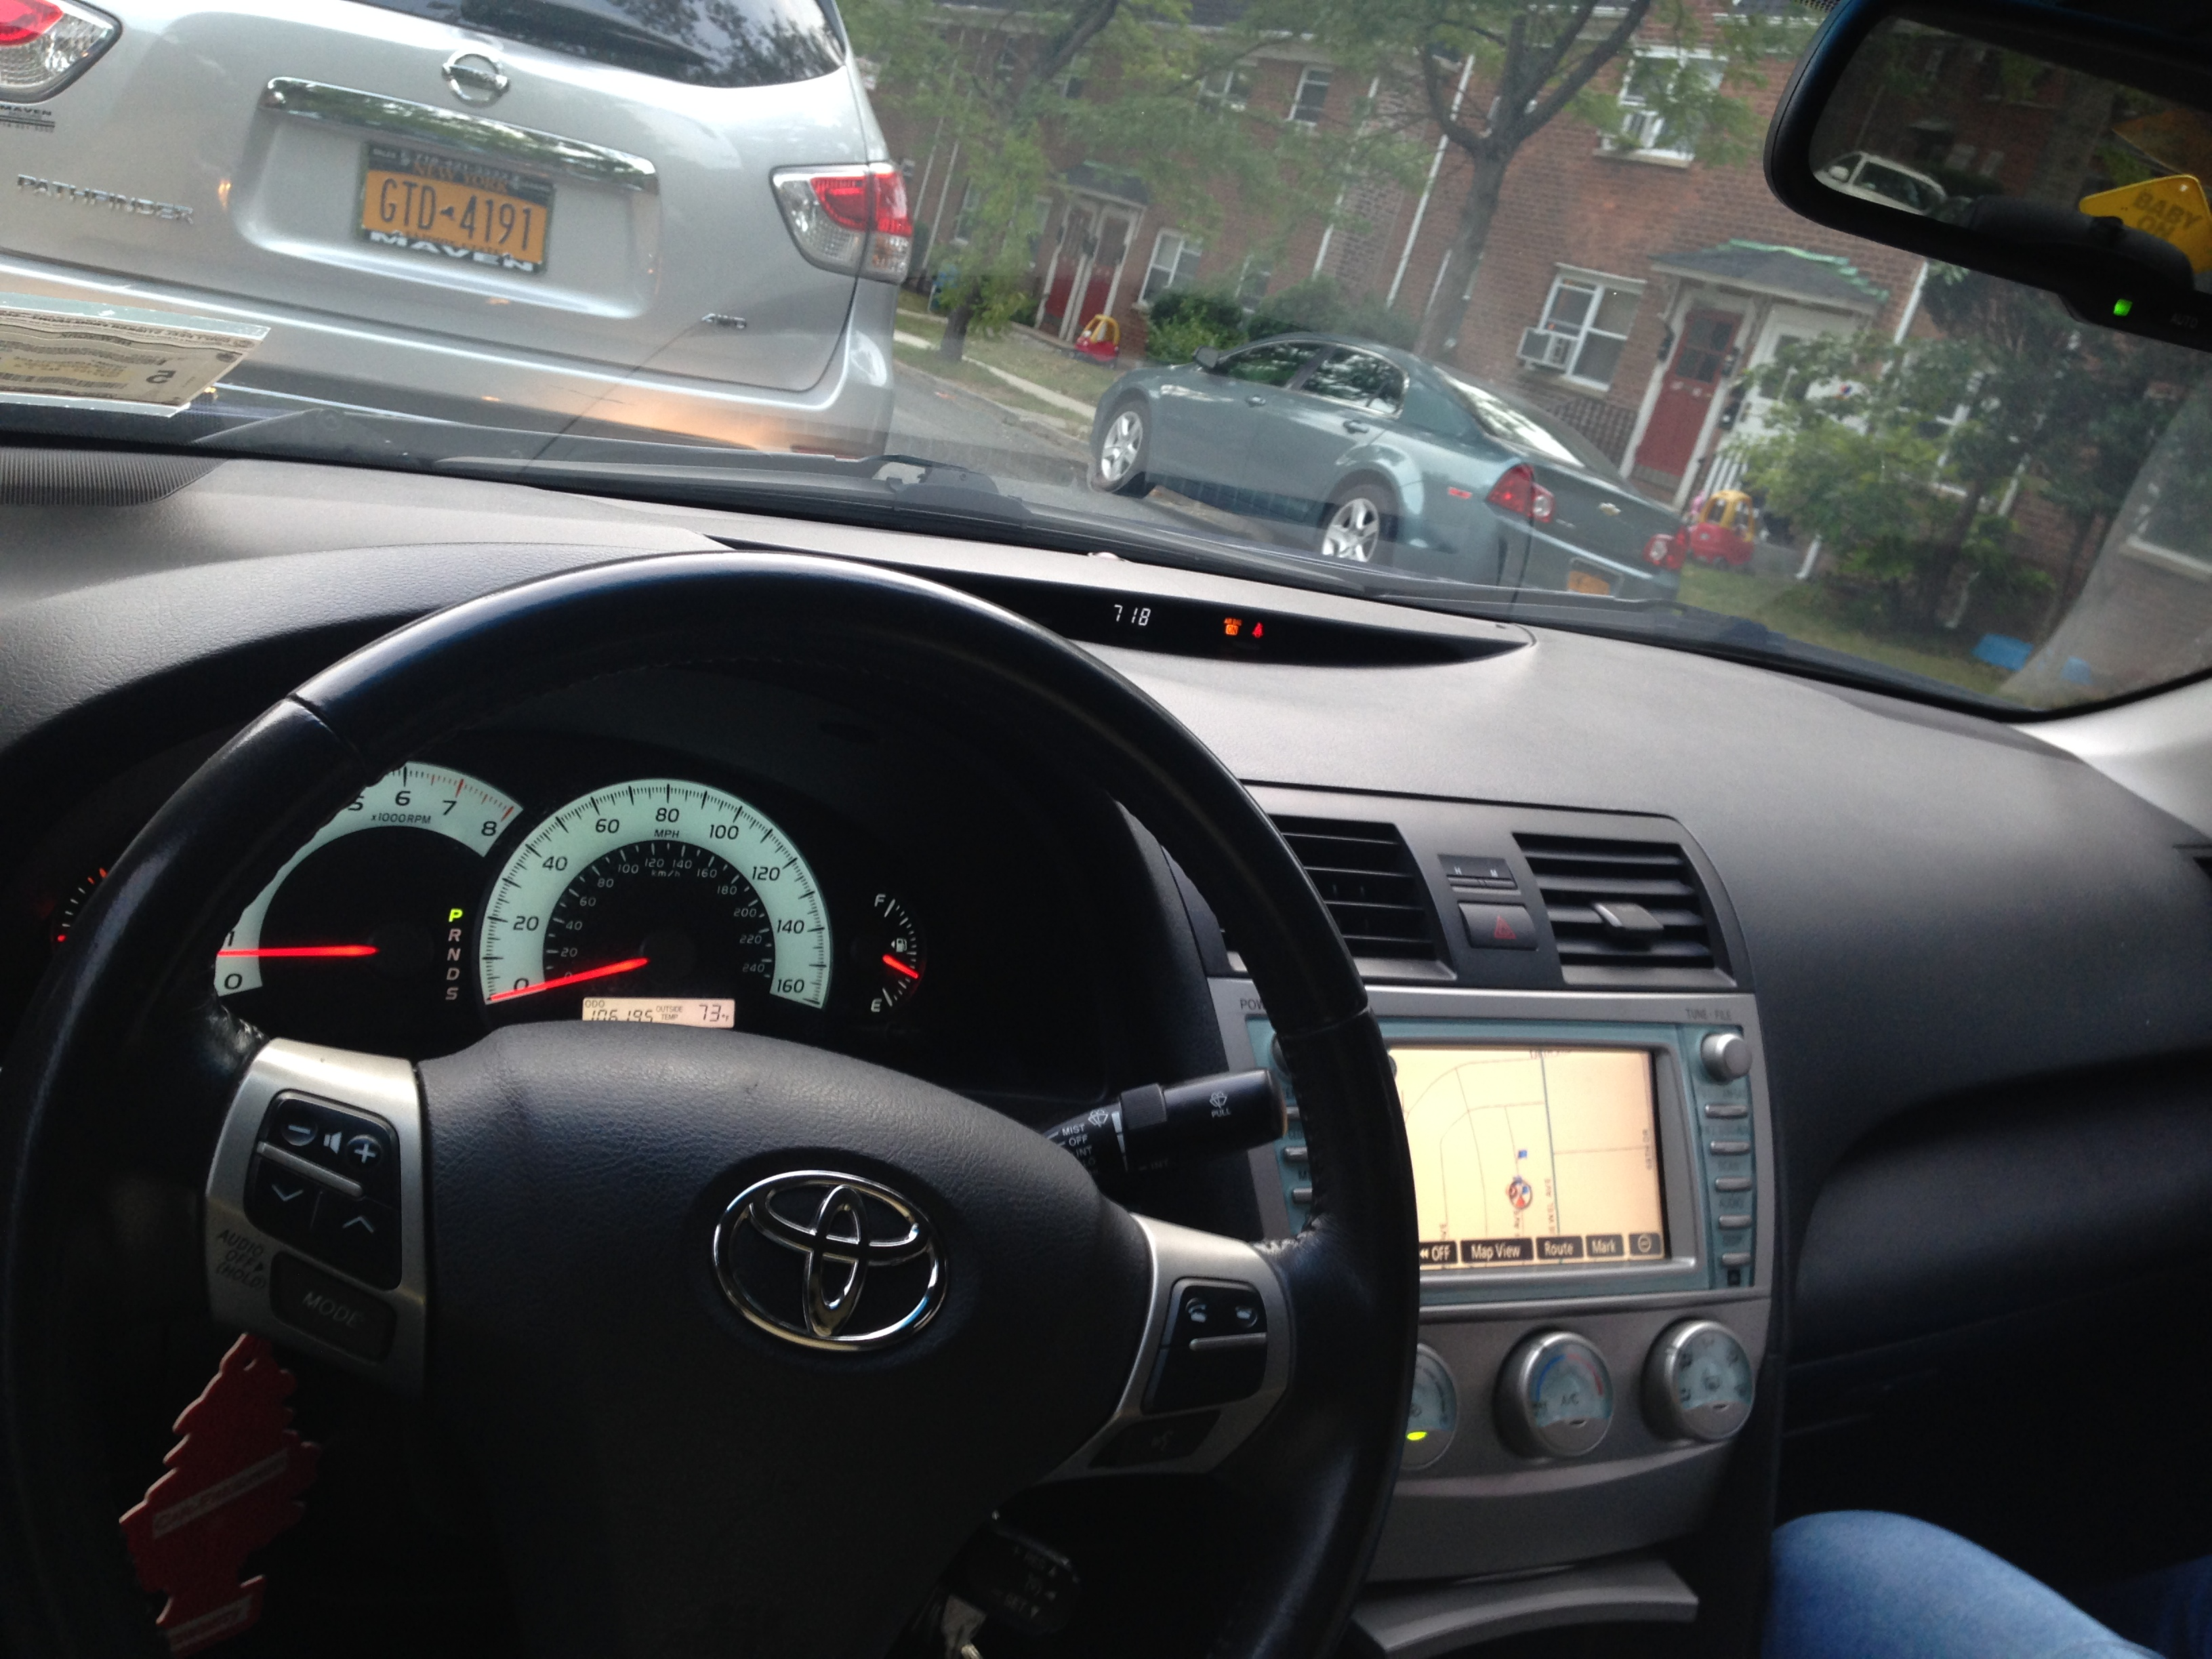 2008 Camry SE with Navigation